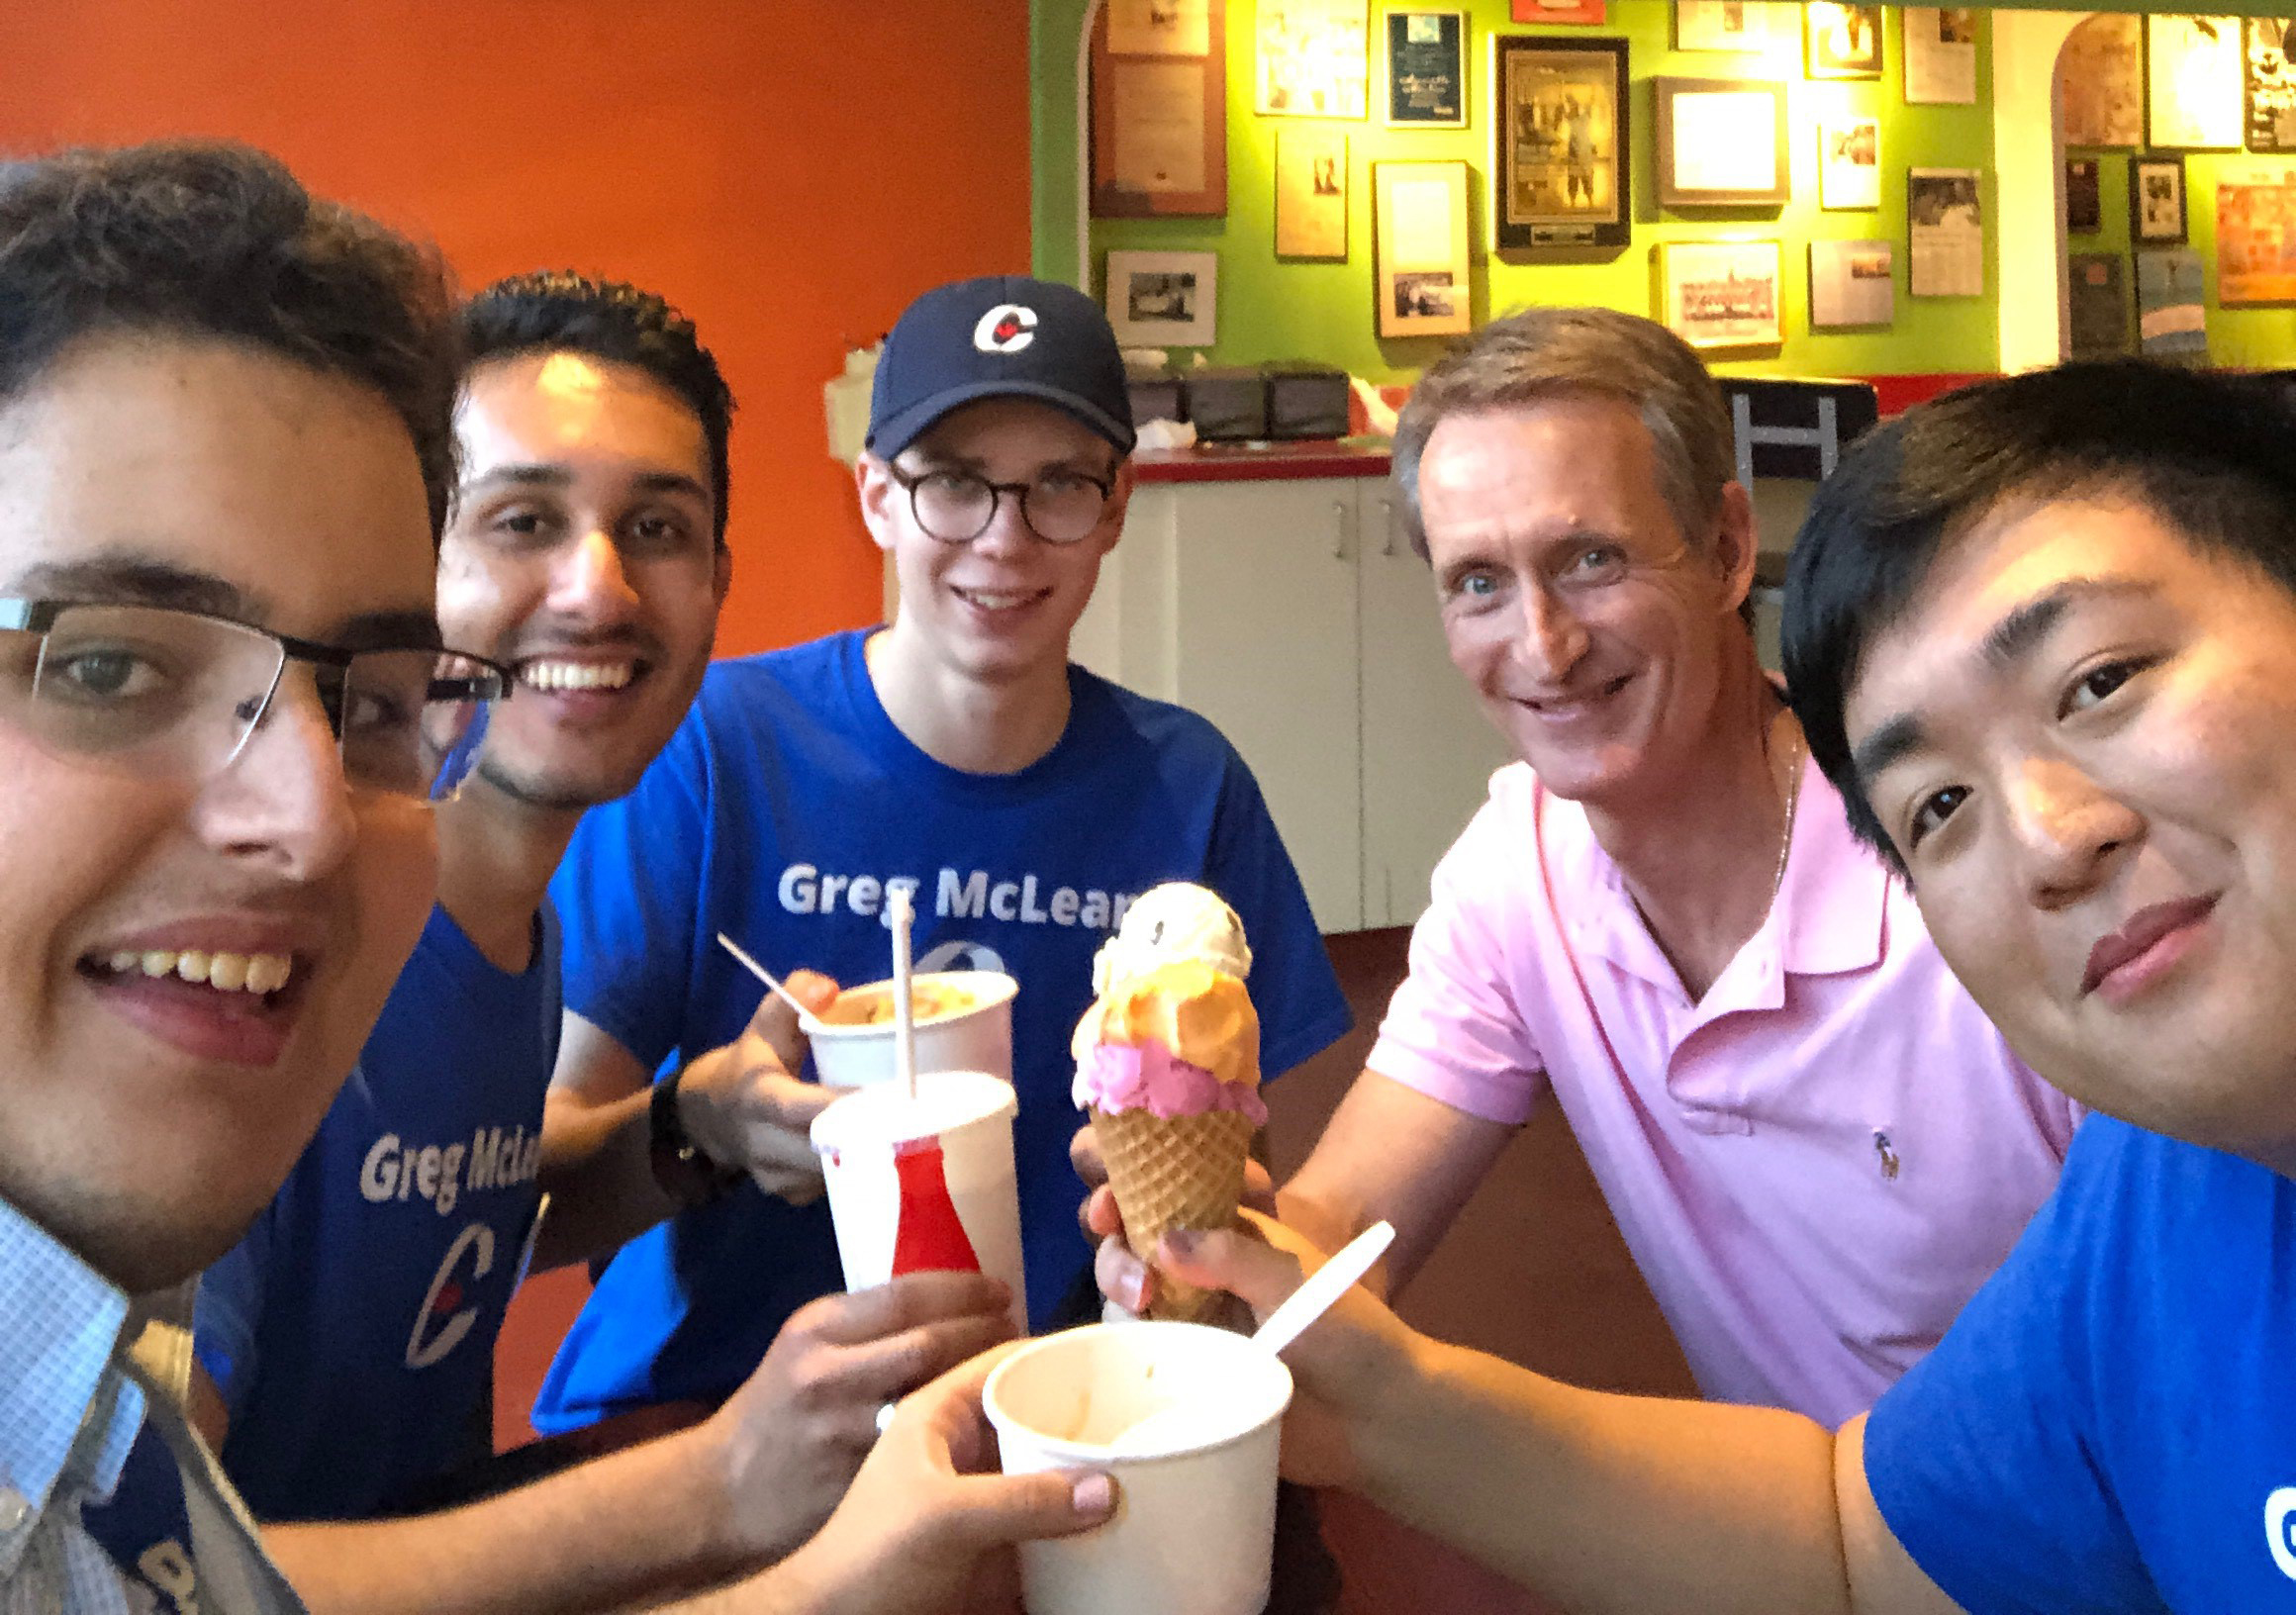 My favourite Ice Cream Store. Ice cream with the team! Note that my much smaller cone is hidden by the big appetites. These guys earn it.